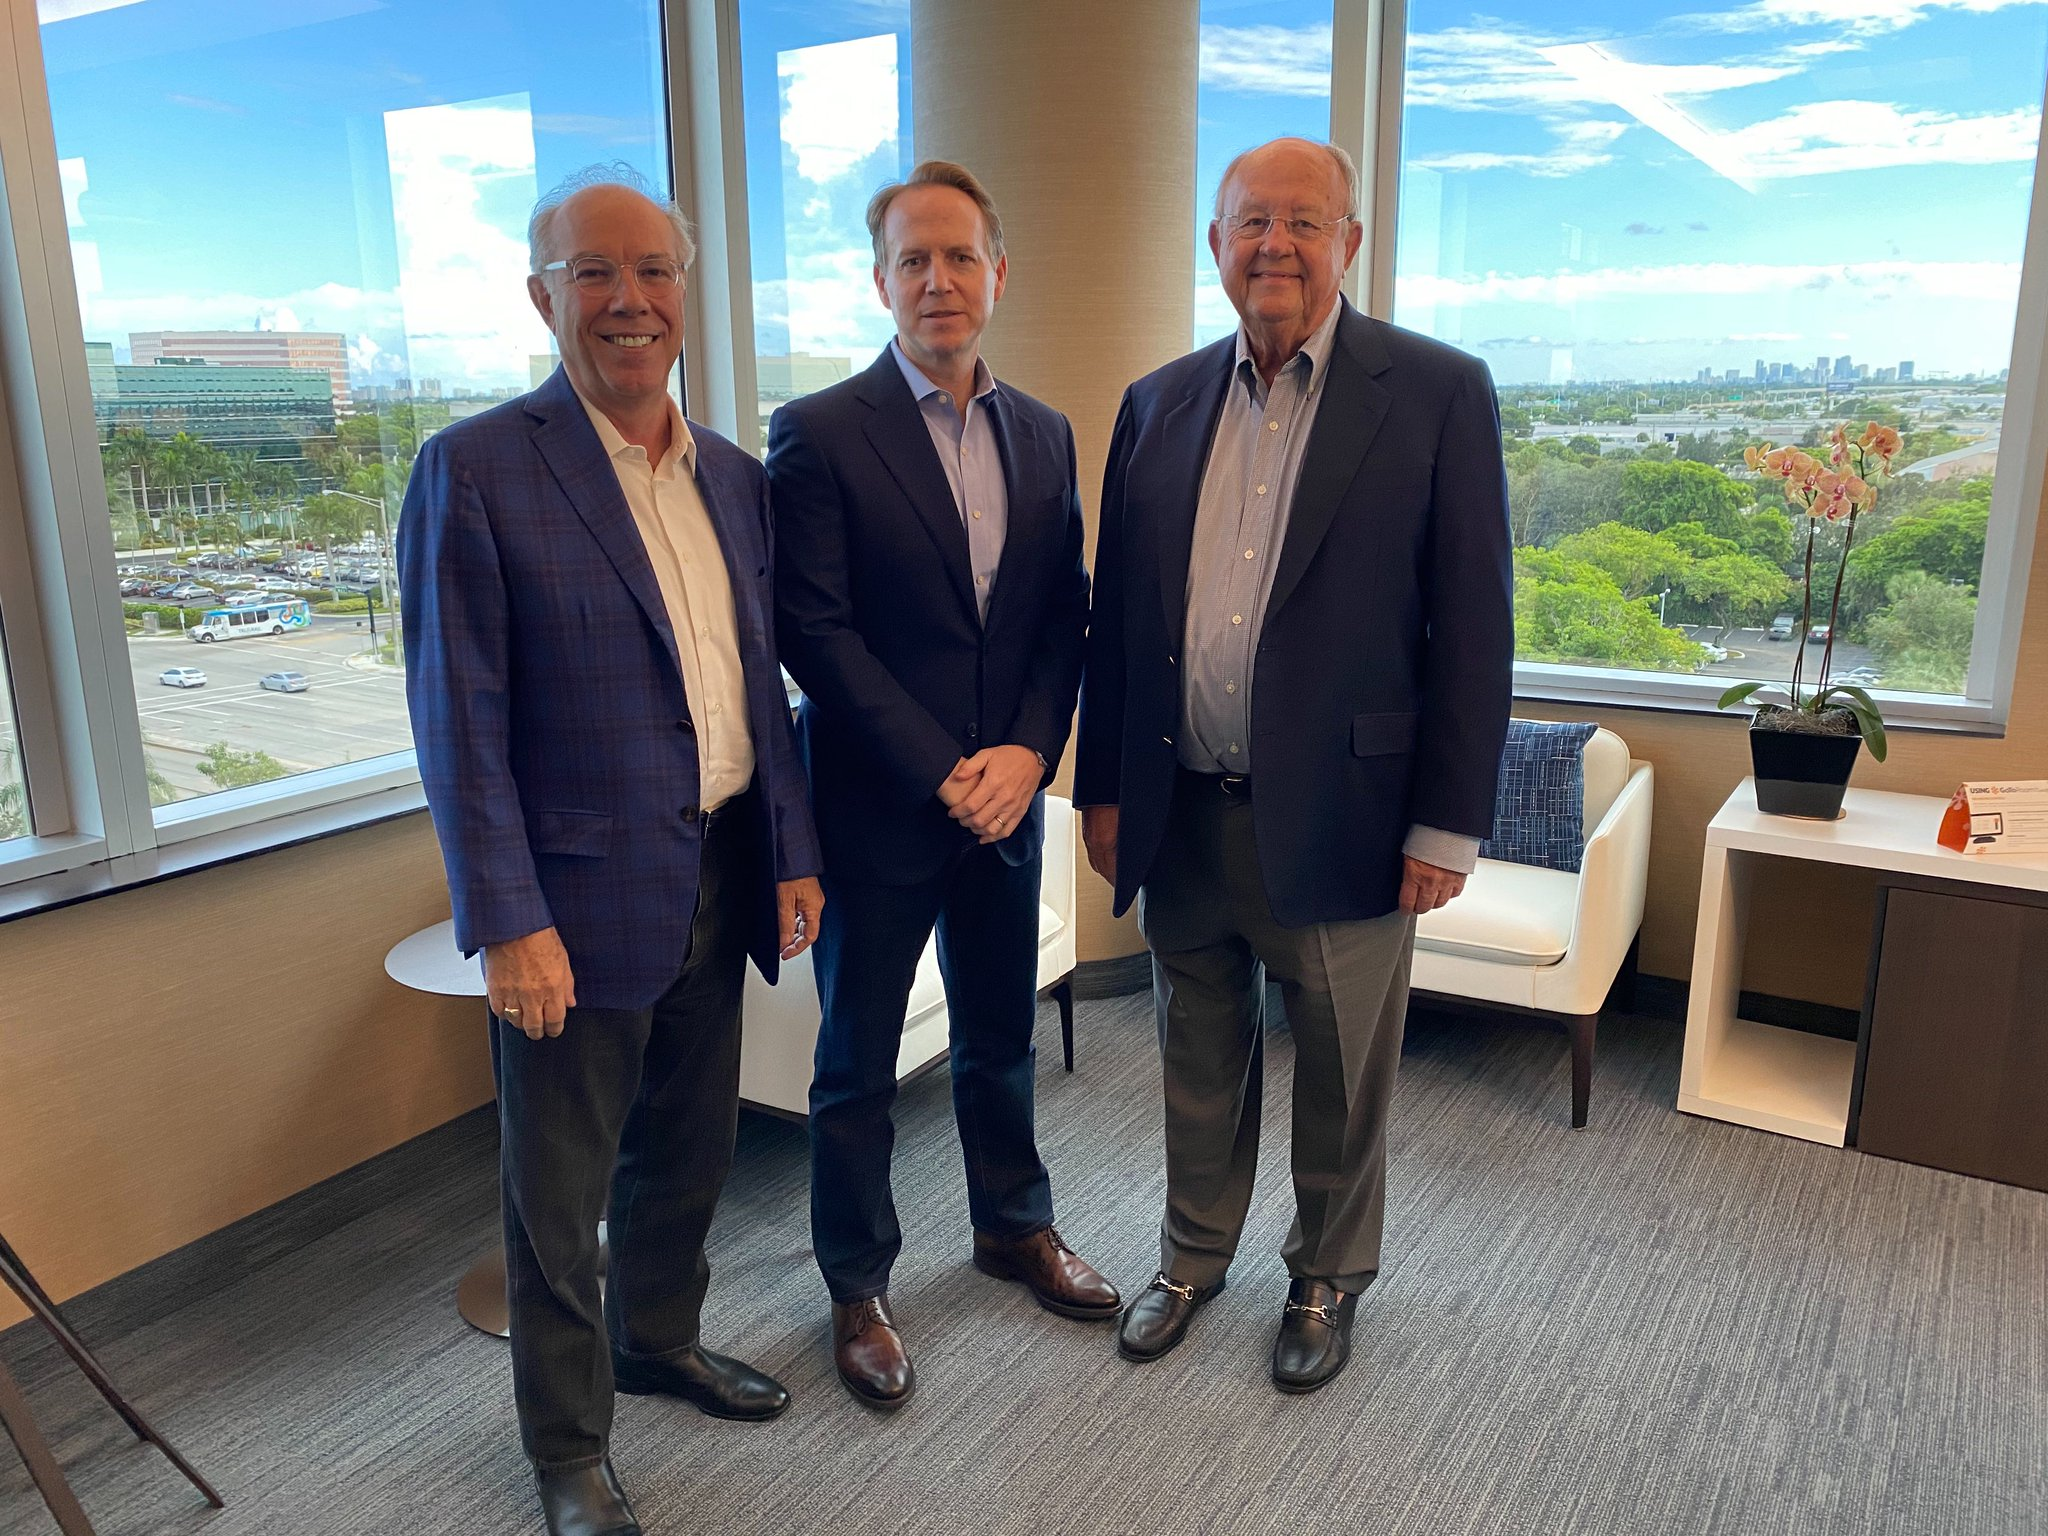 Tonight, it's 3 decades of Citrix CEOs, as we celebrate our 30th Anniversary! Roger Roberts (our 1st CEO), @MarkBTempleton, Pres. & CEO from 1998-2015, and @DavidJHenshall, our fearless leader & current CEO, chatted with @Dana_Gardner to reflect on the last 30 years. #CitrixIsHow https://t.co/PZkp4PvZ2v